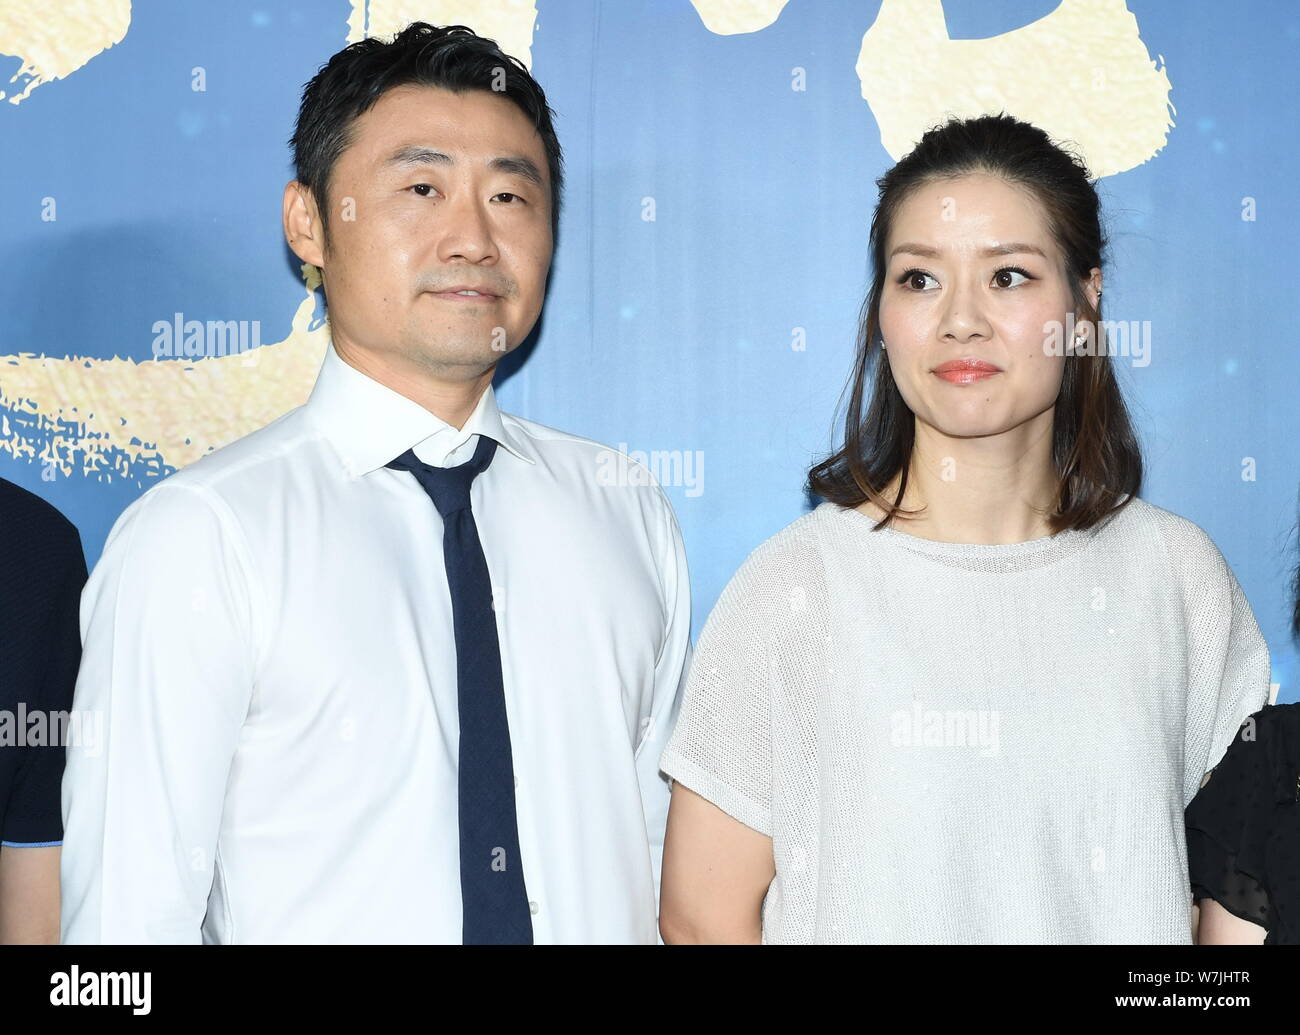 Retired Chinese tennis star Li Na, right, and her husband Jiang ...